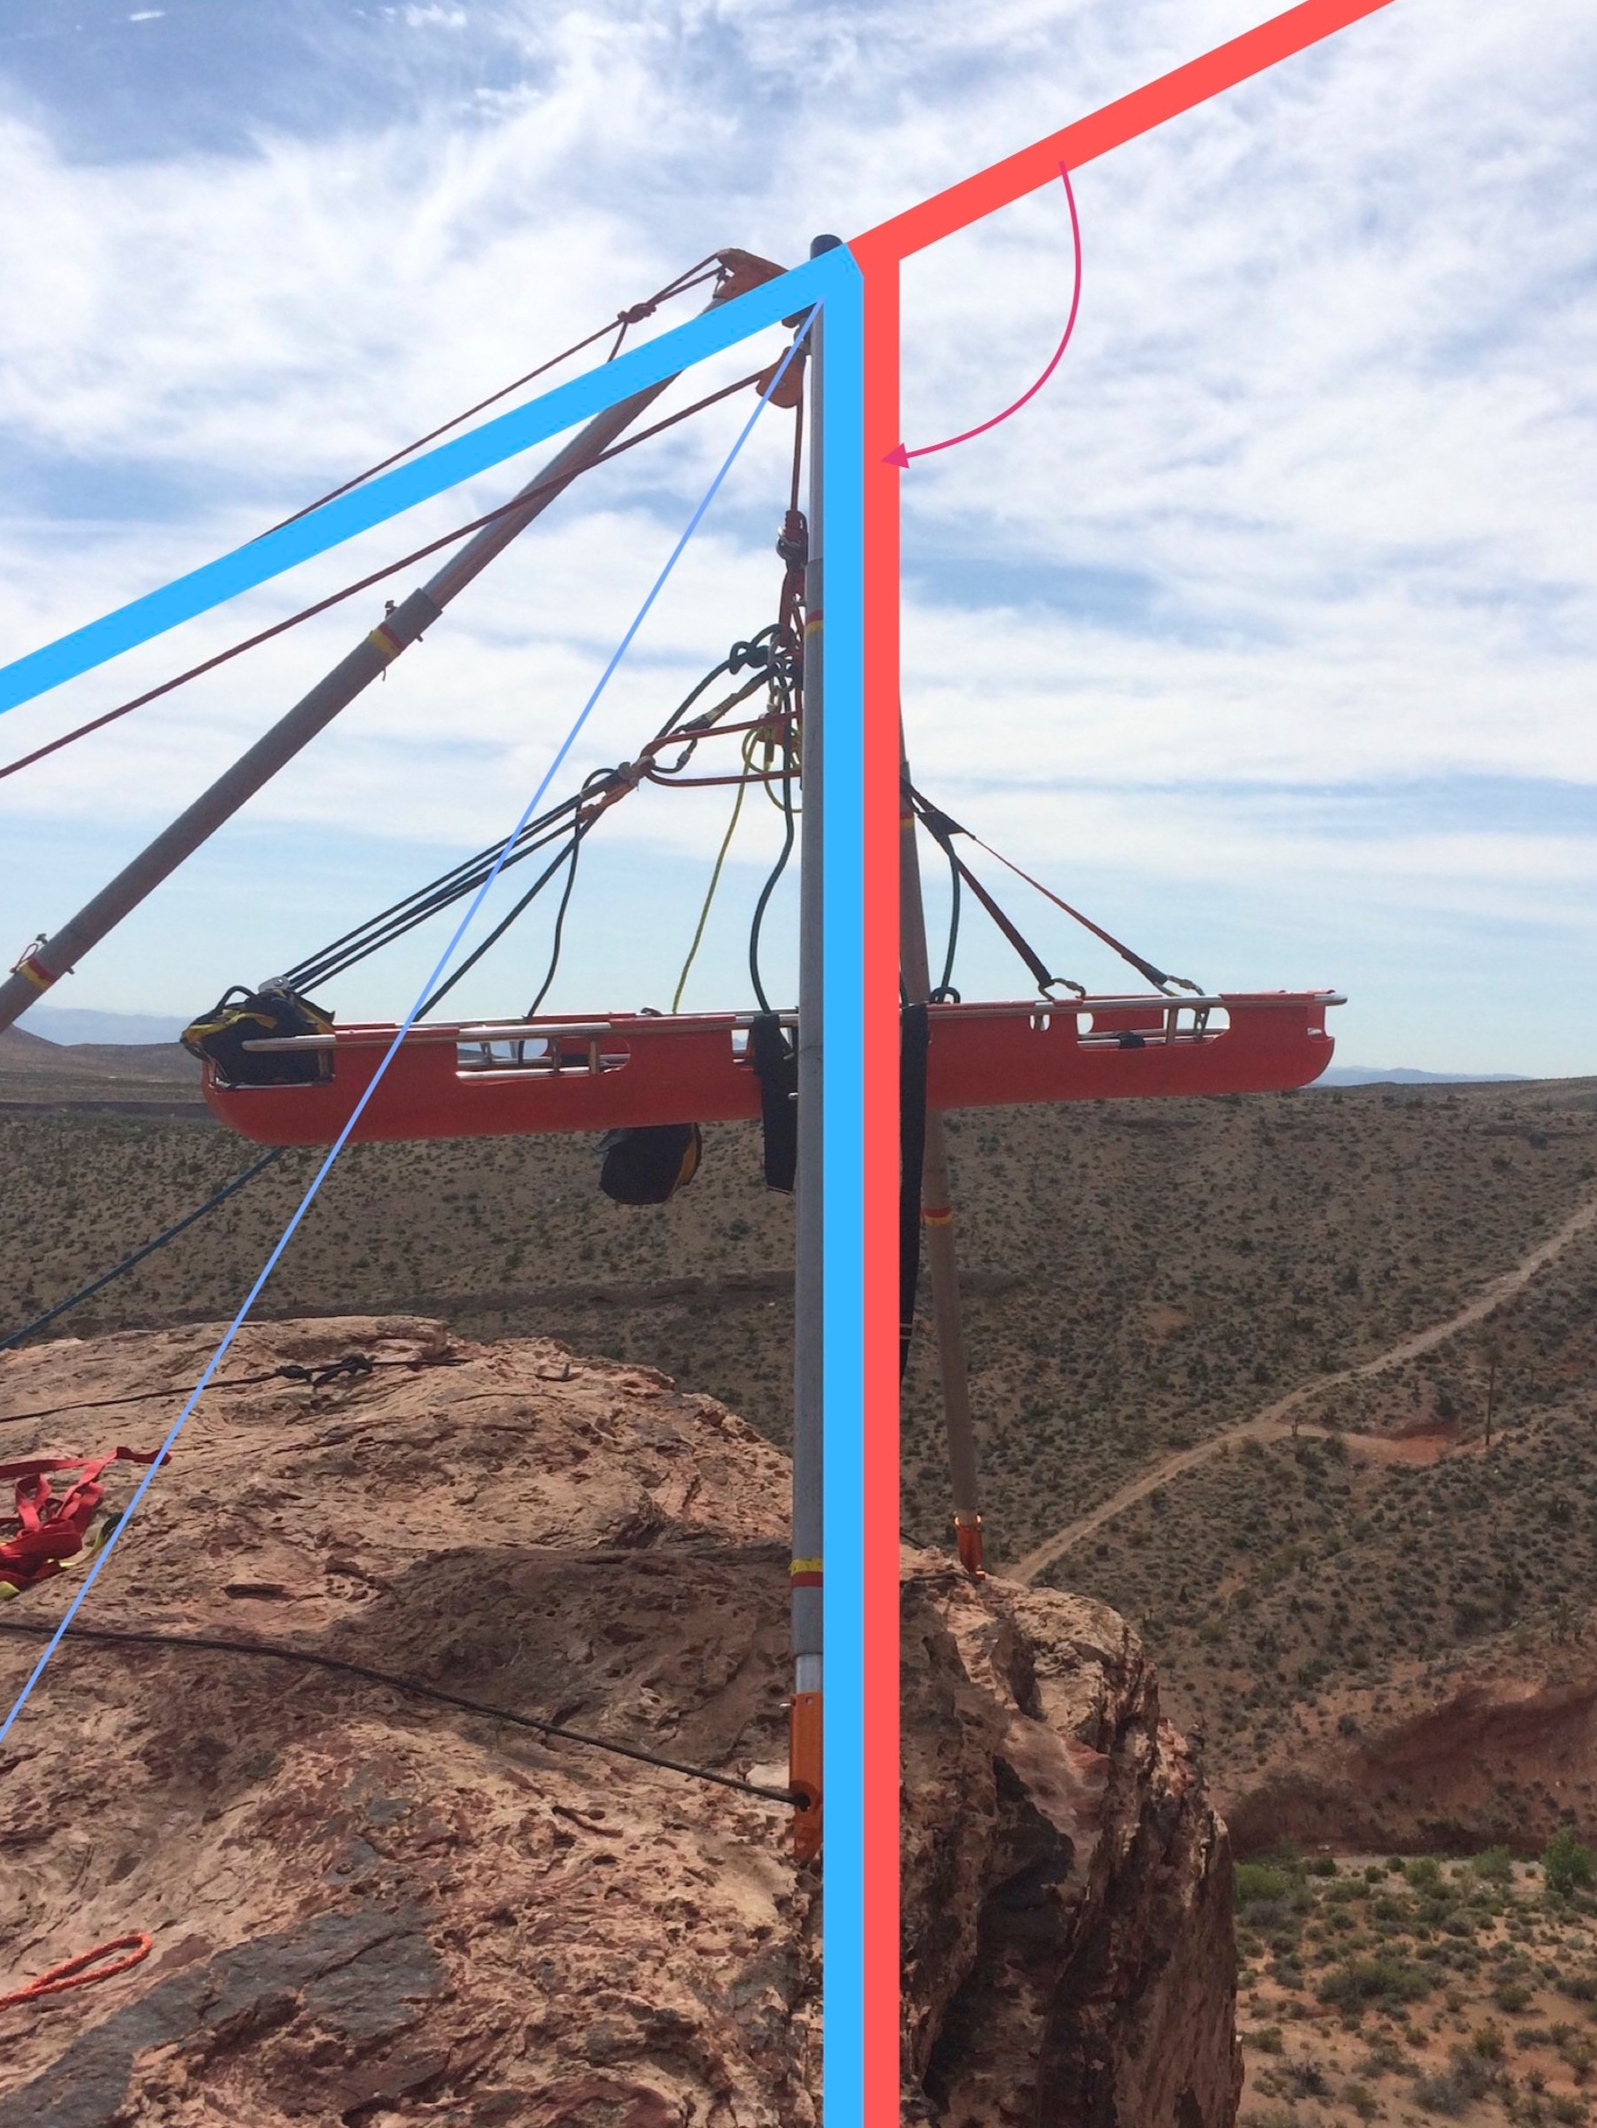 Training in Red Rock Canyon, NV. The angle in red is the deflection angle. The angle in blue is the interior angle. The resultant vector is also shown in blue.